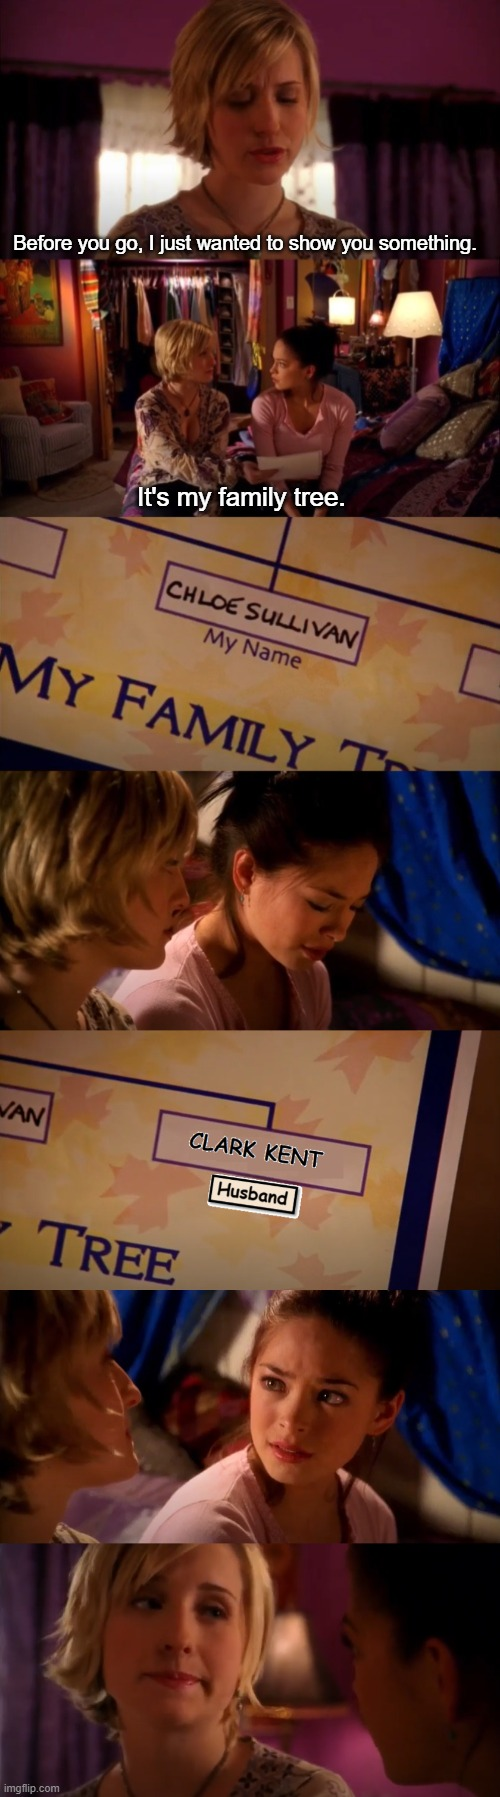 Chloe Sullivan's family tree |  Before you go, I just wanted to show you something. It's my family tree. | image tagged in smallville,clark kent,chloe sullivan,lana lang,superman,warner bros | made w/ Imgflip meme maker